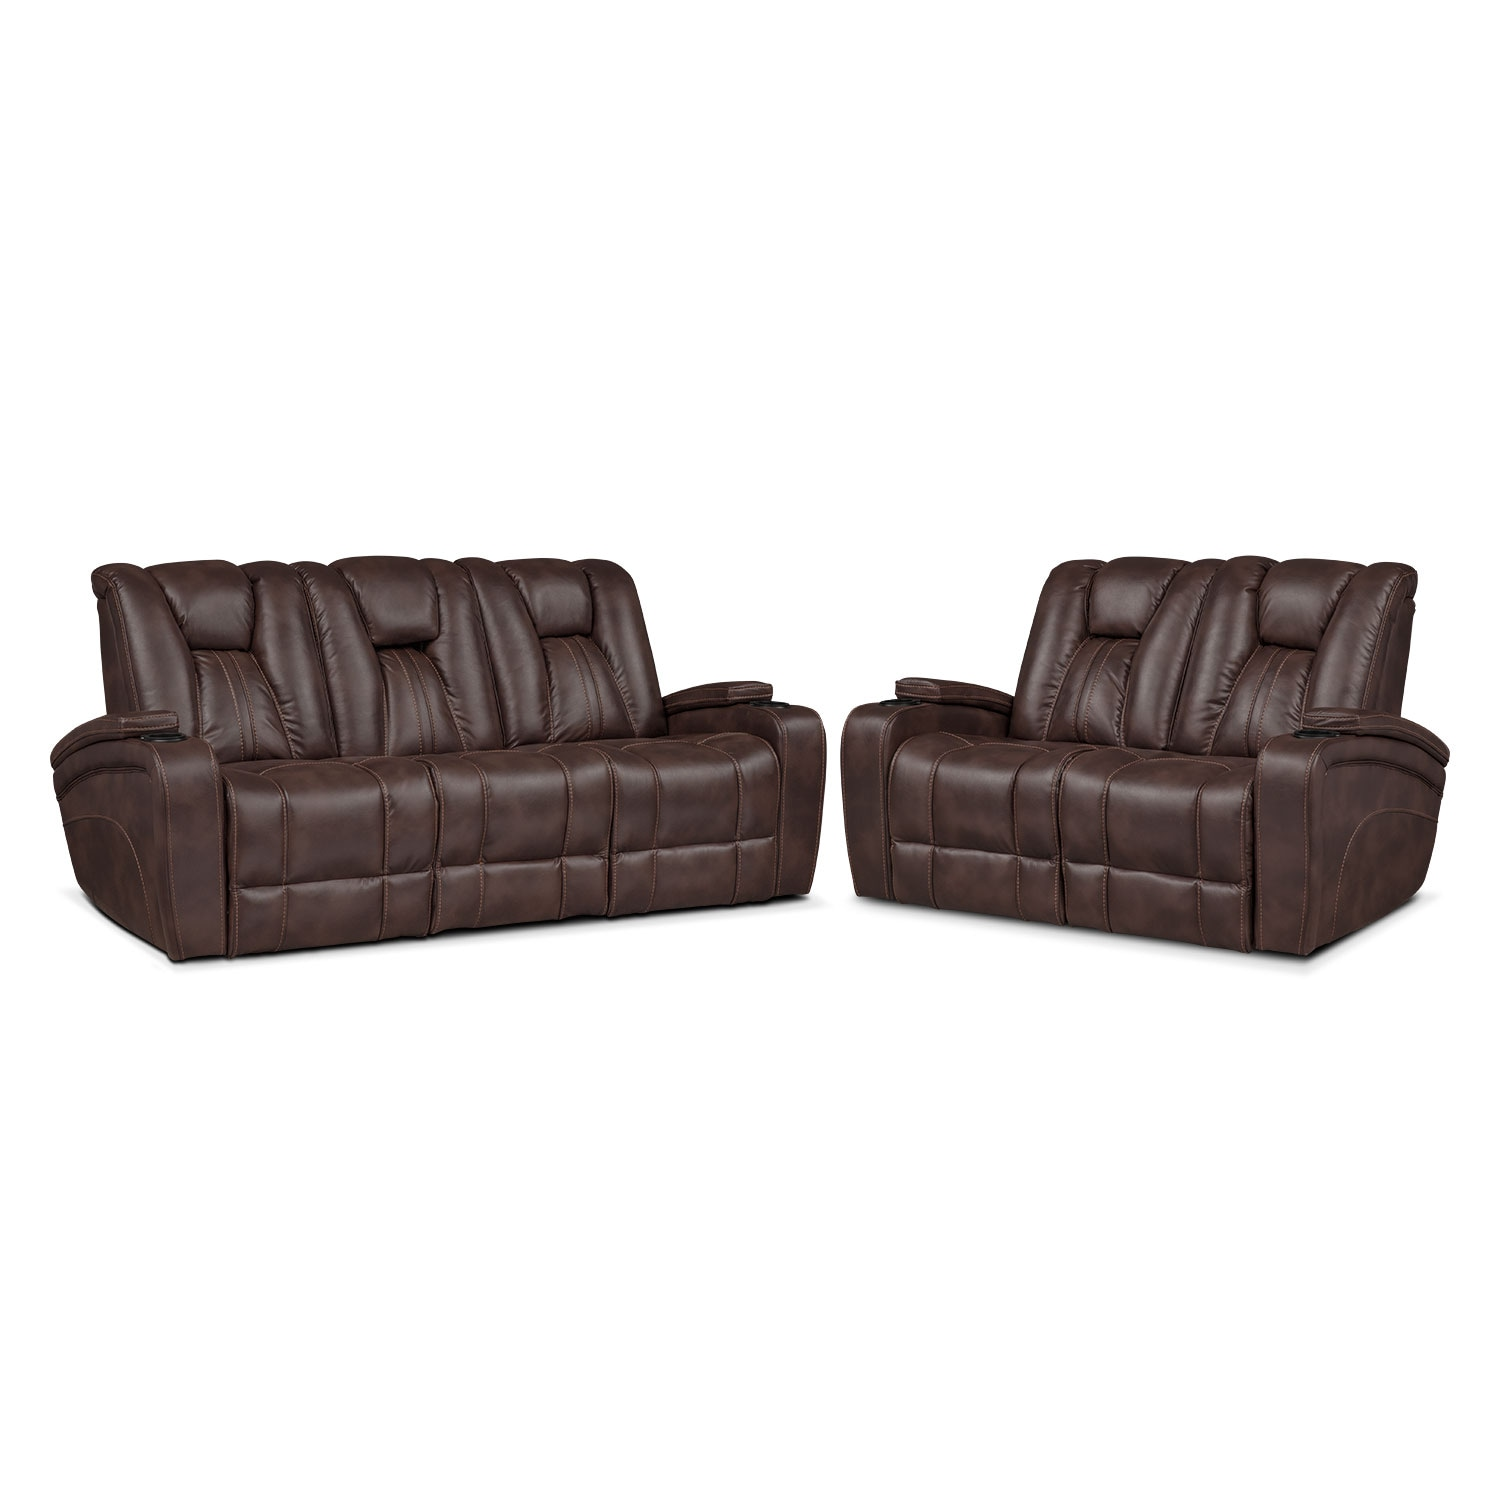 Pulsar dual power reclining sofa and dual power reclining Power reclining sofas and loveseats